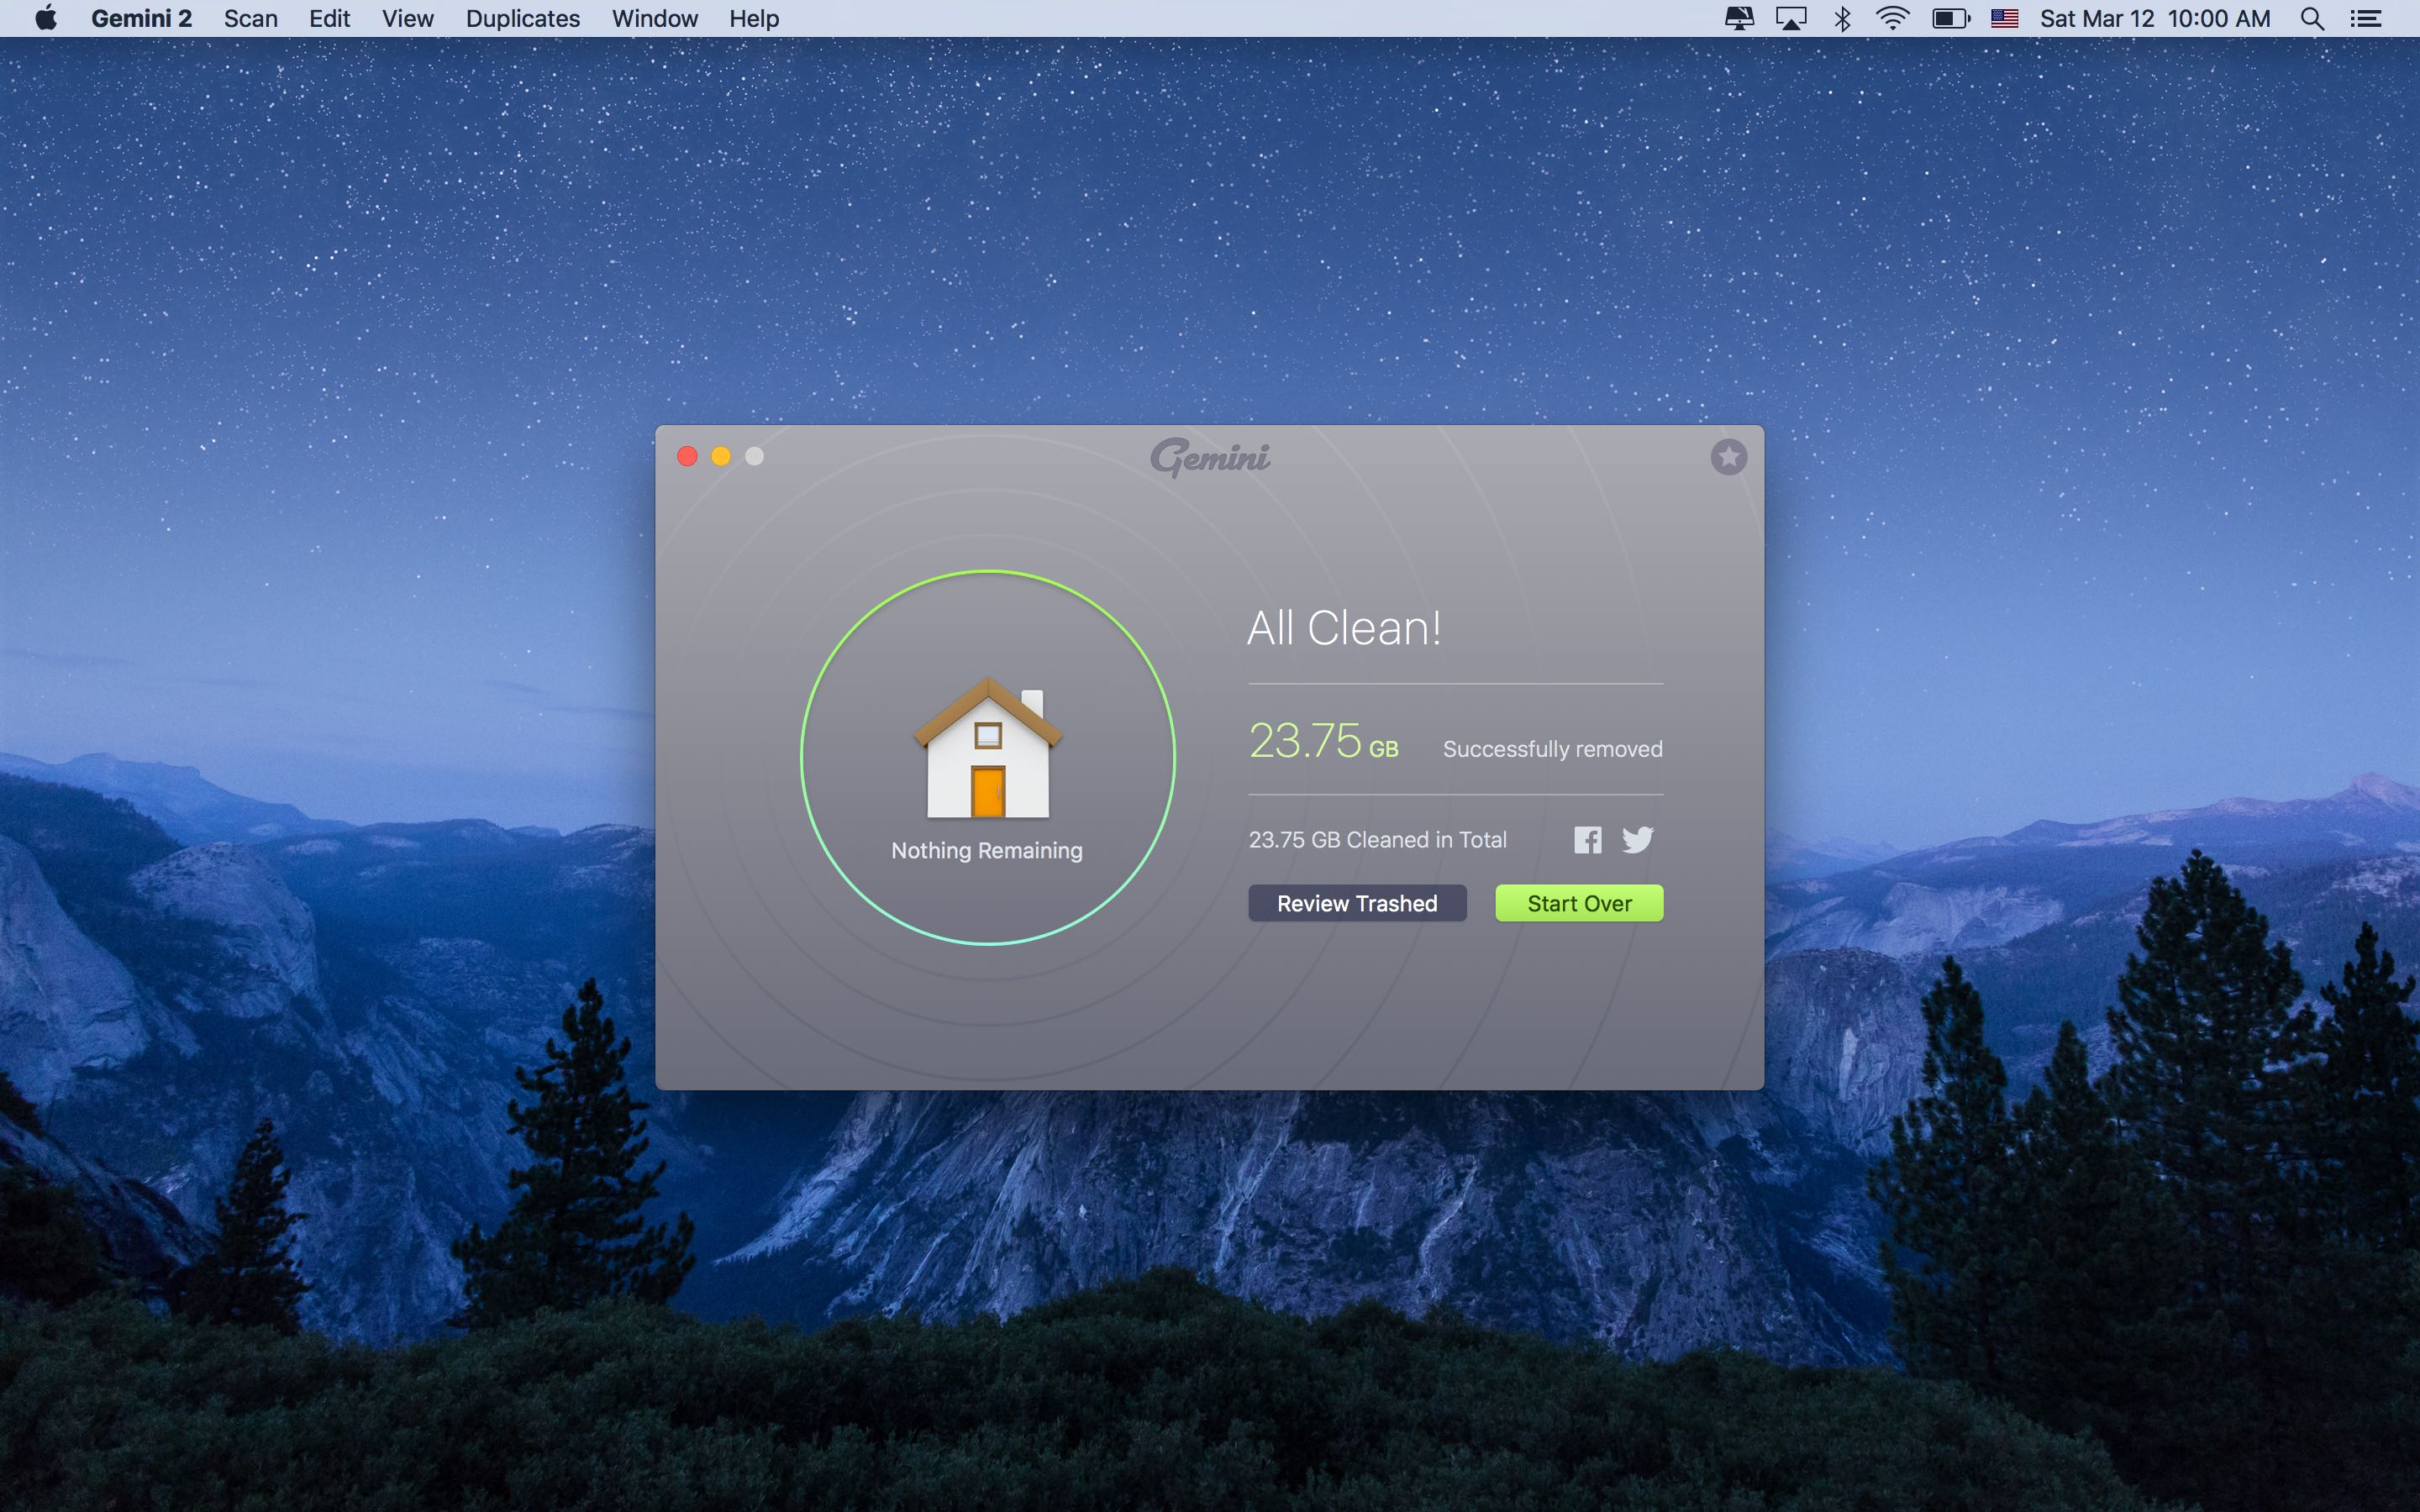 Gemini 2.0 for OS X removal progress Mac screenshot 002